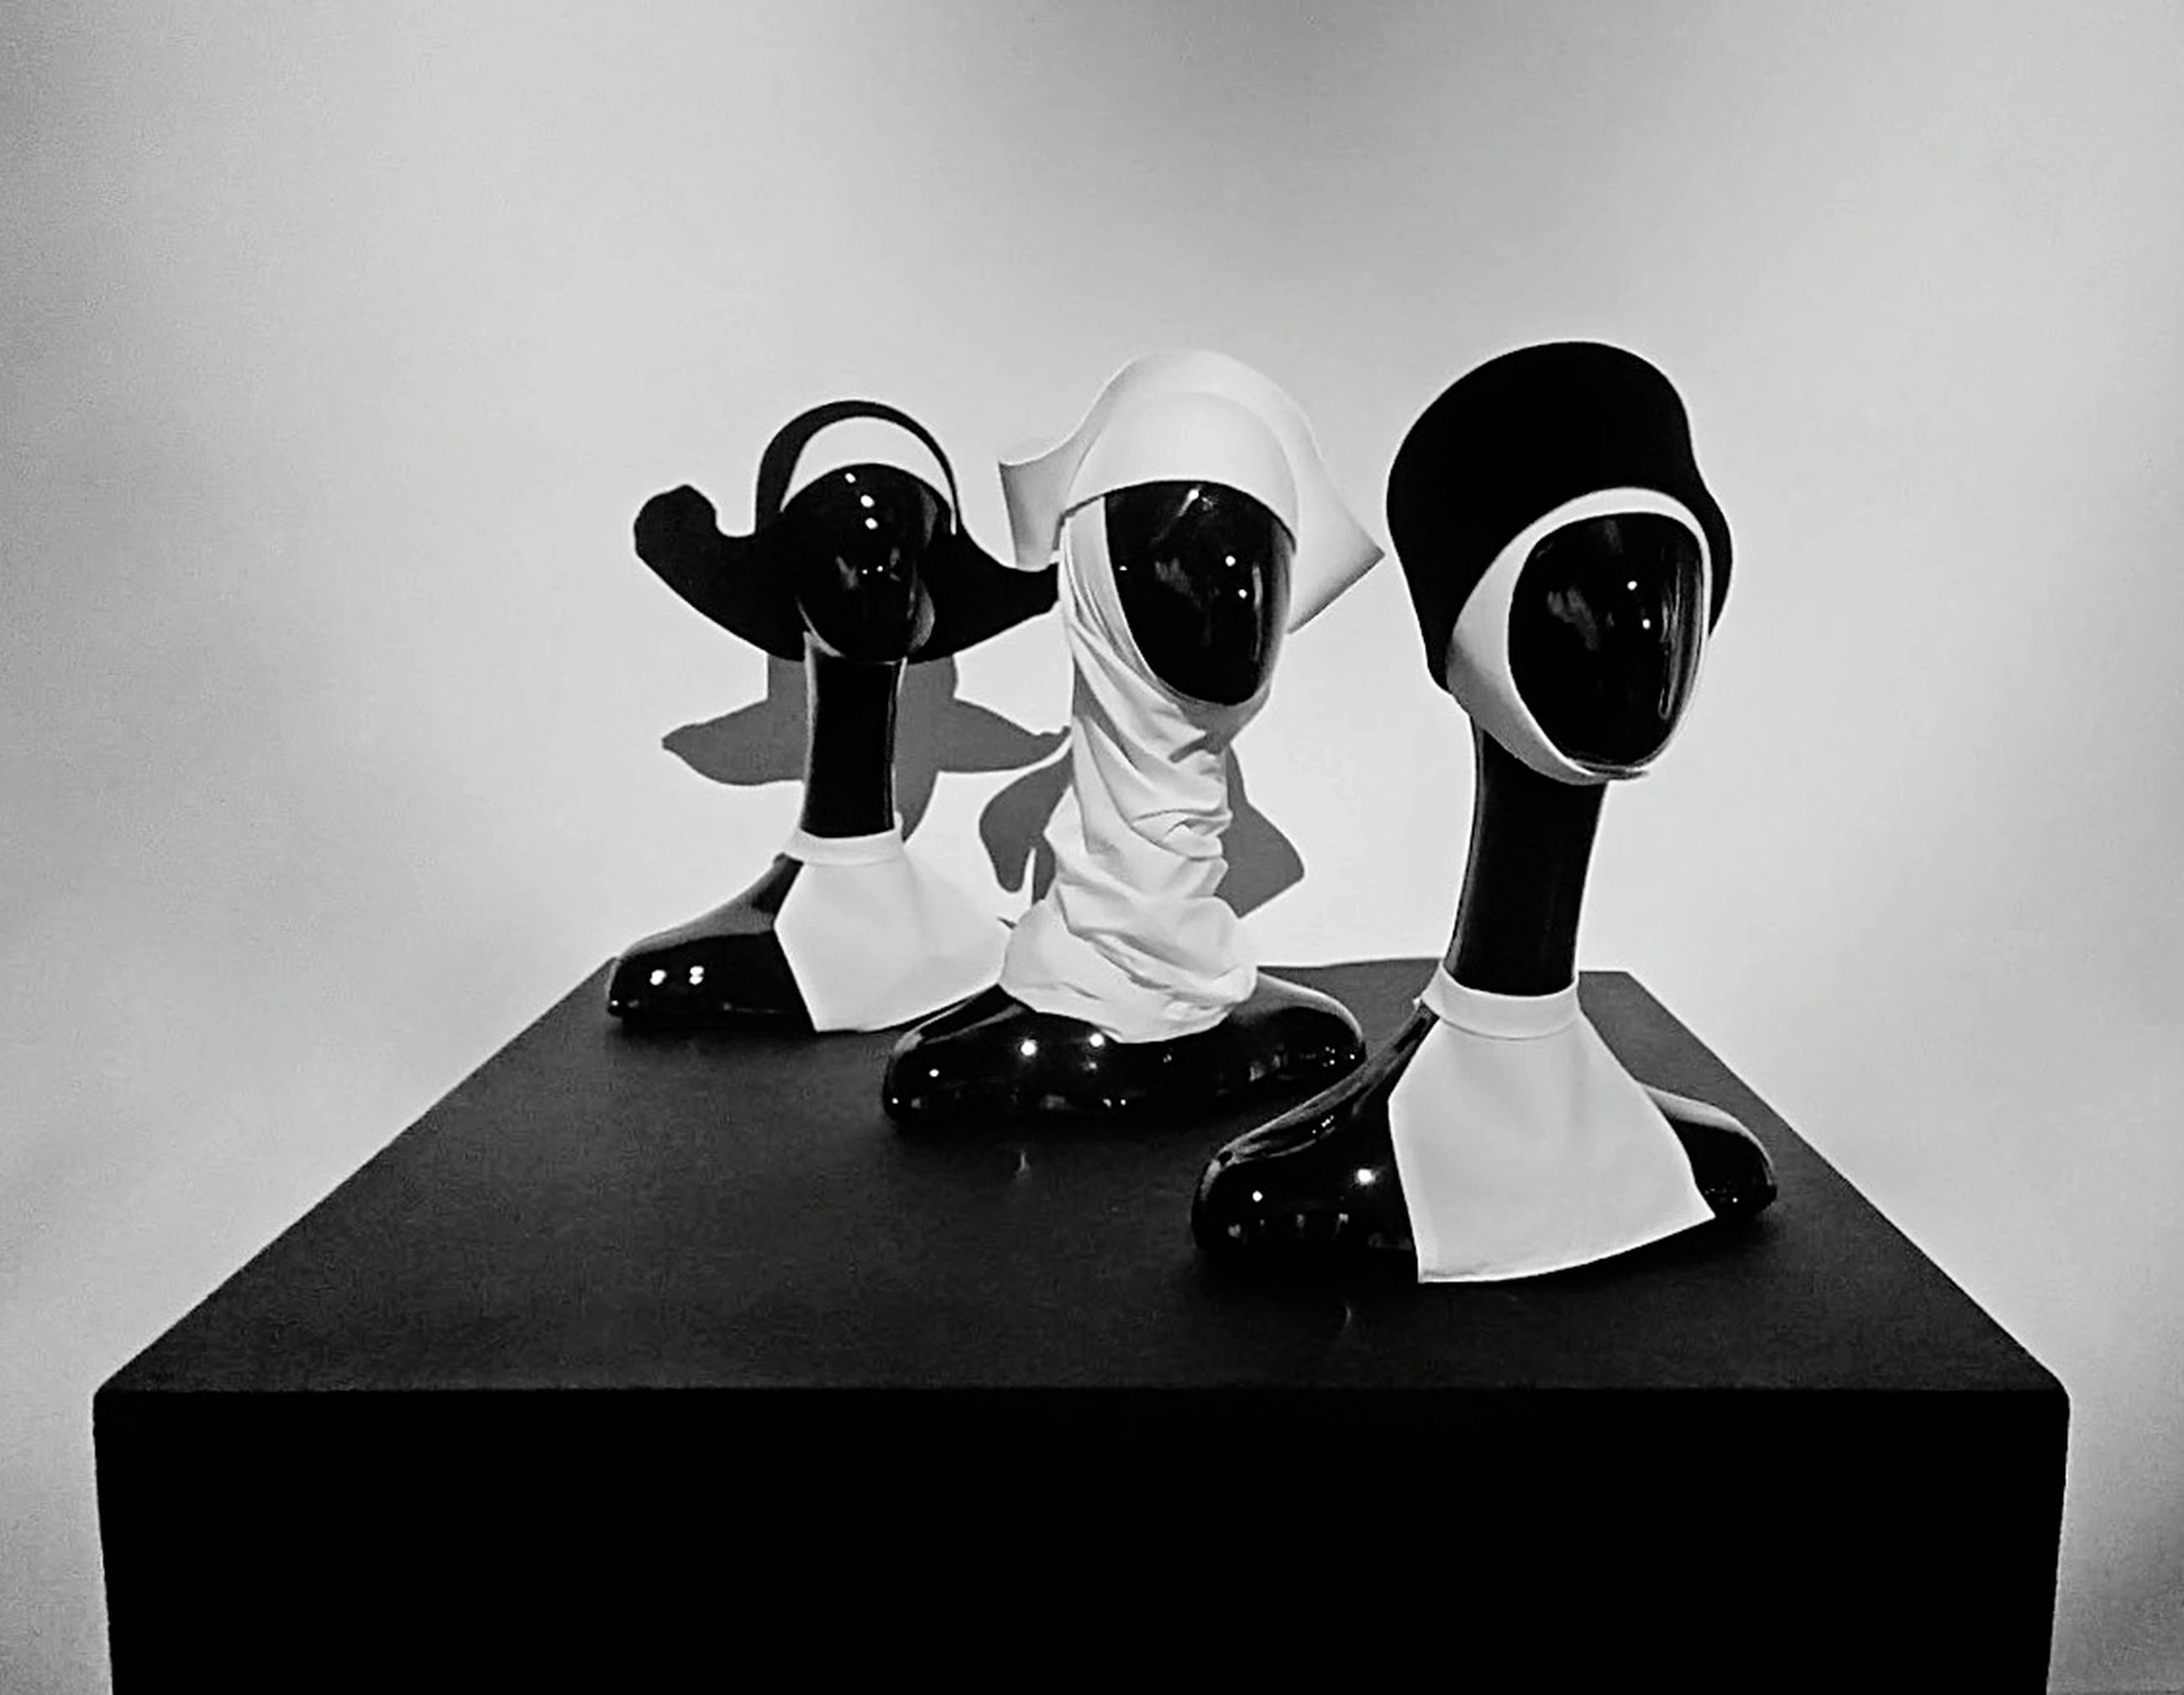 indoors, table, still life, no people, human representation, studio shot, figurine, close-up, representation, sport, arts culture and entertainment, fashion, standing, black color, man made object, wall - building feature, female likeness, man made, paper